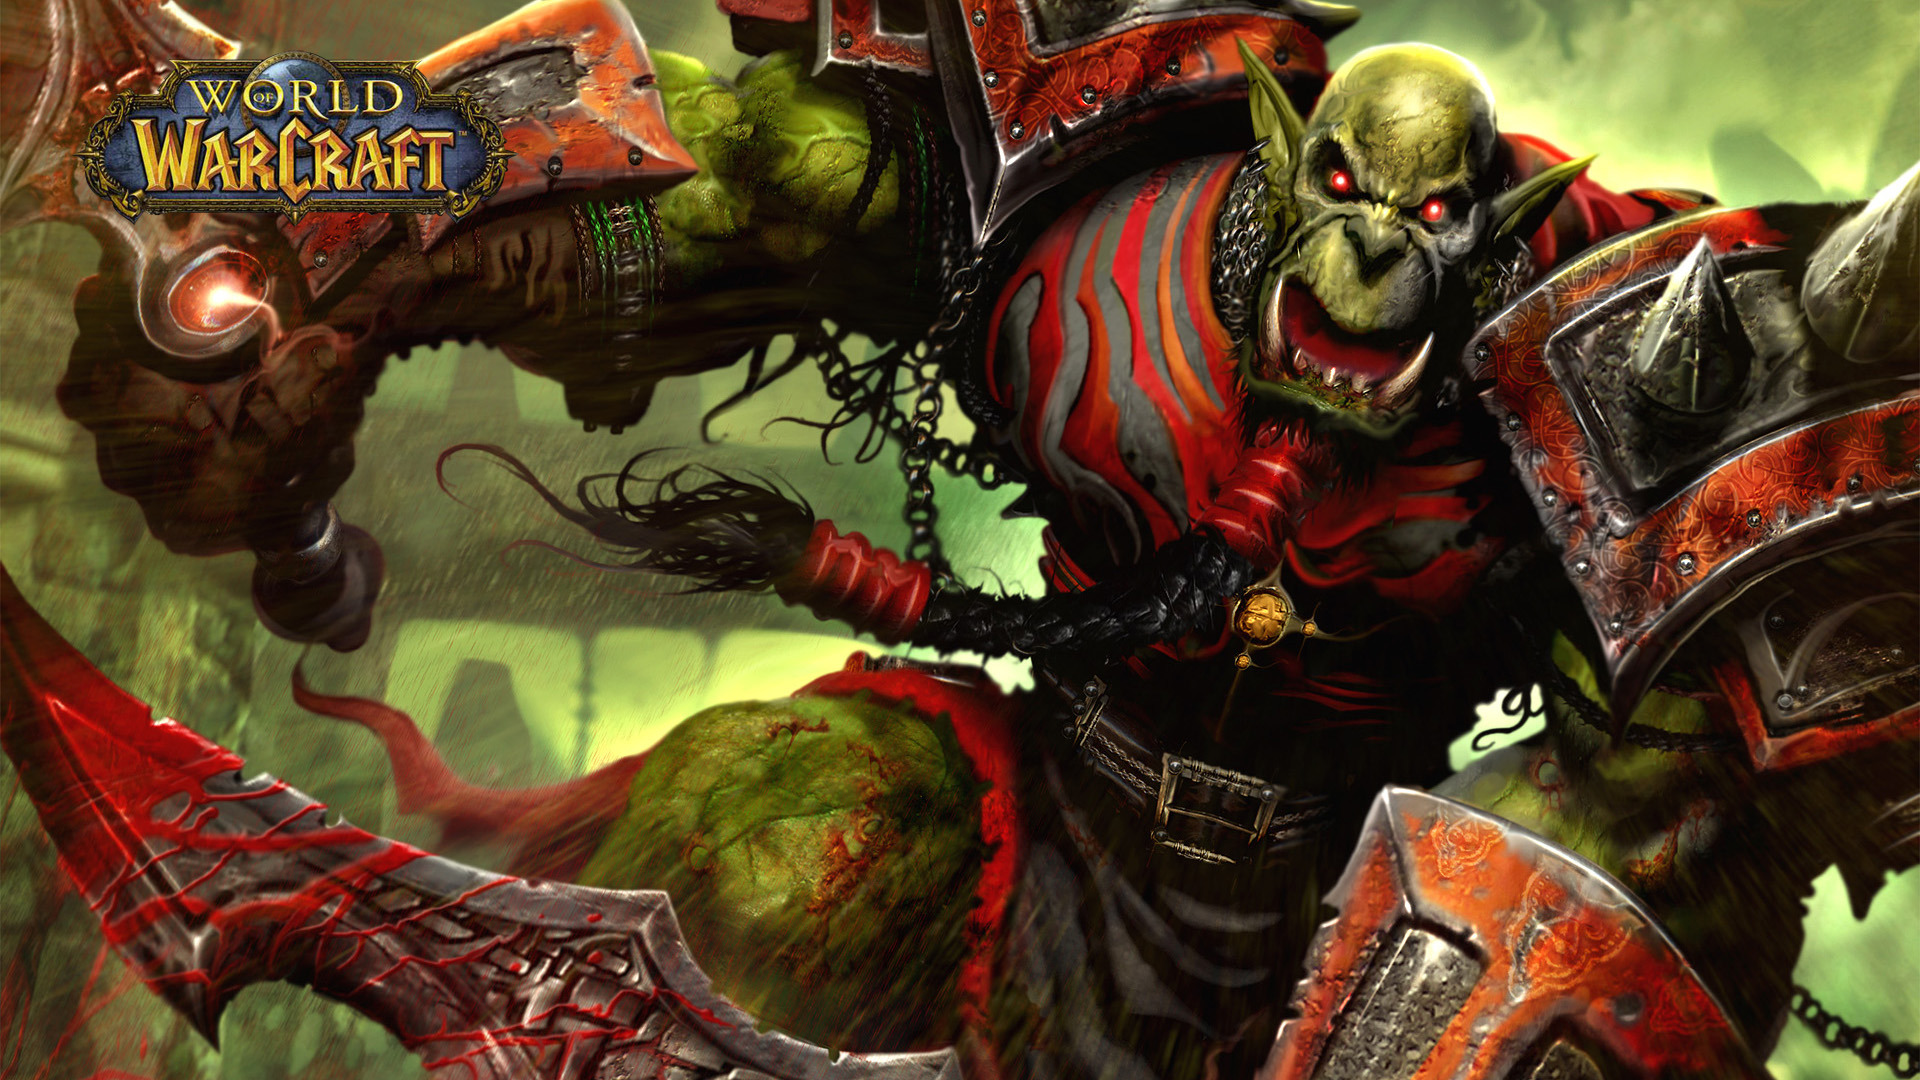 Spawn orc warcraft 2 sexual thumbs